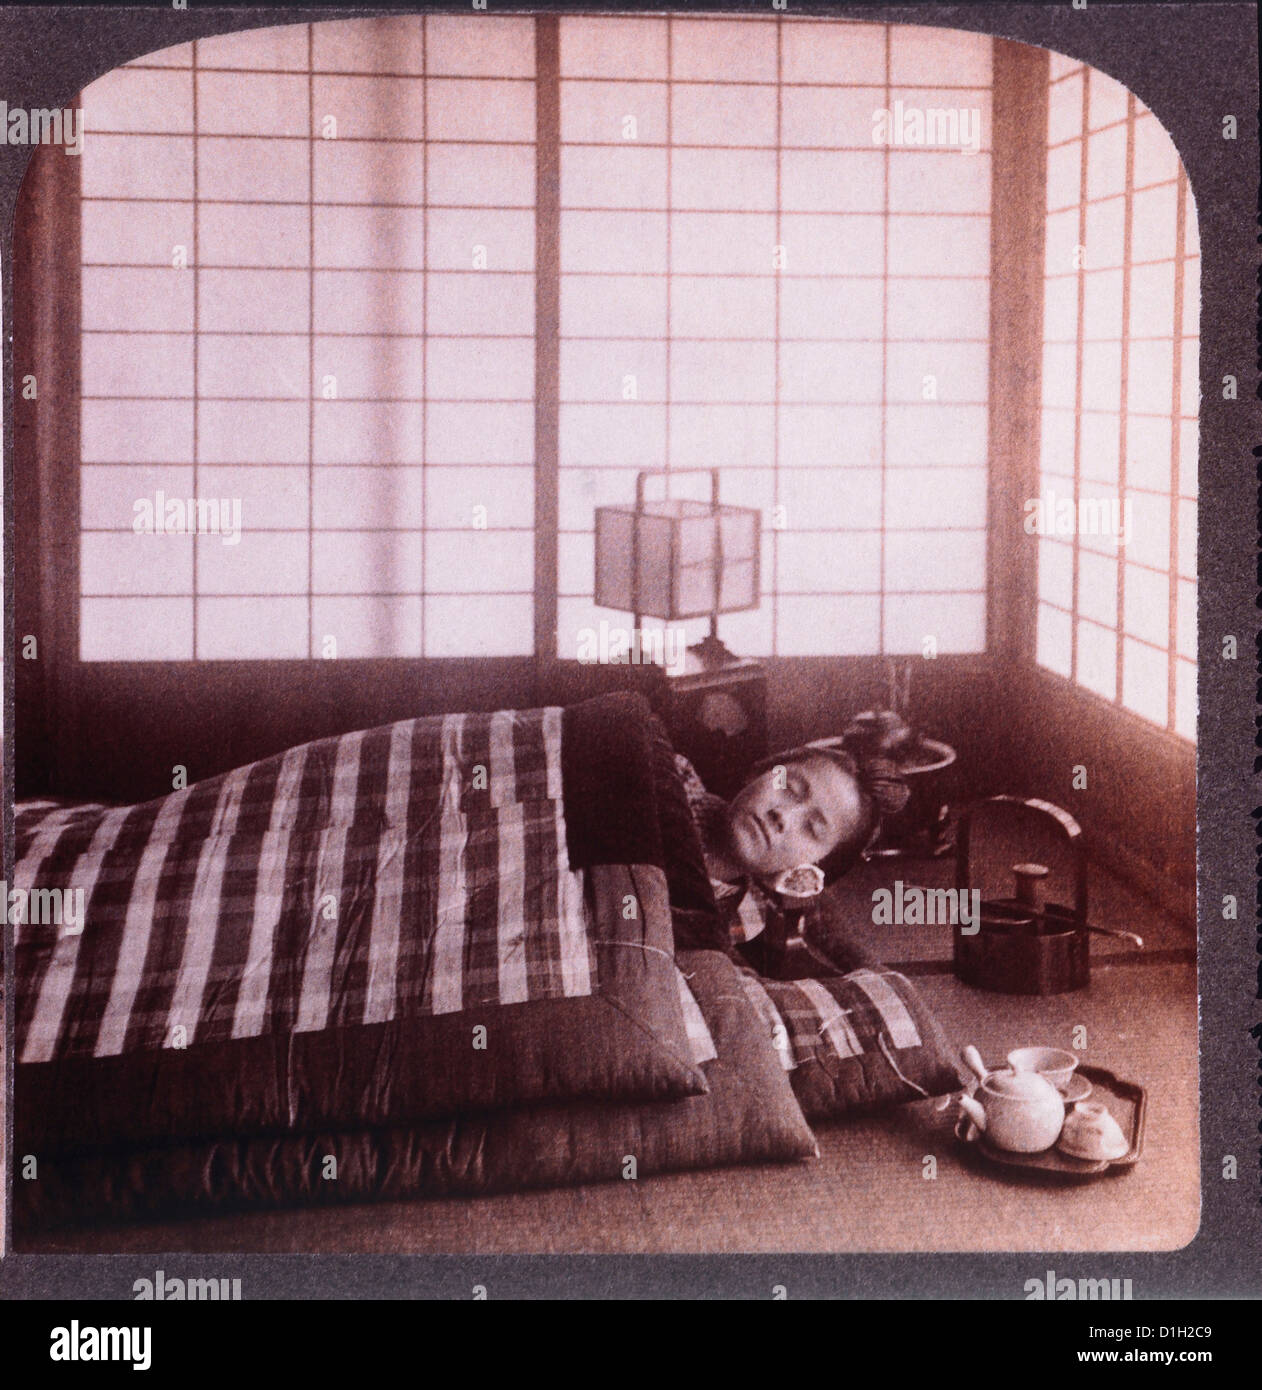 Young Japanese Woman Sleeping Between Futons, Stereo Photograph, 1904 Stock Photo